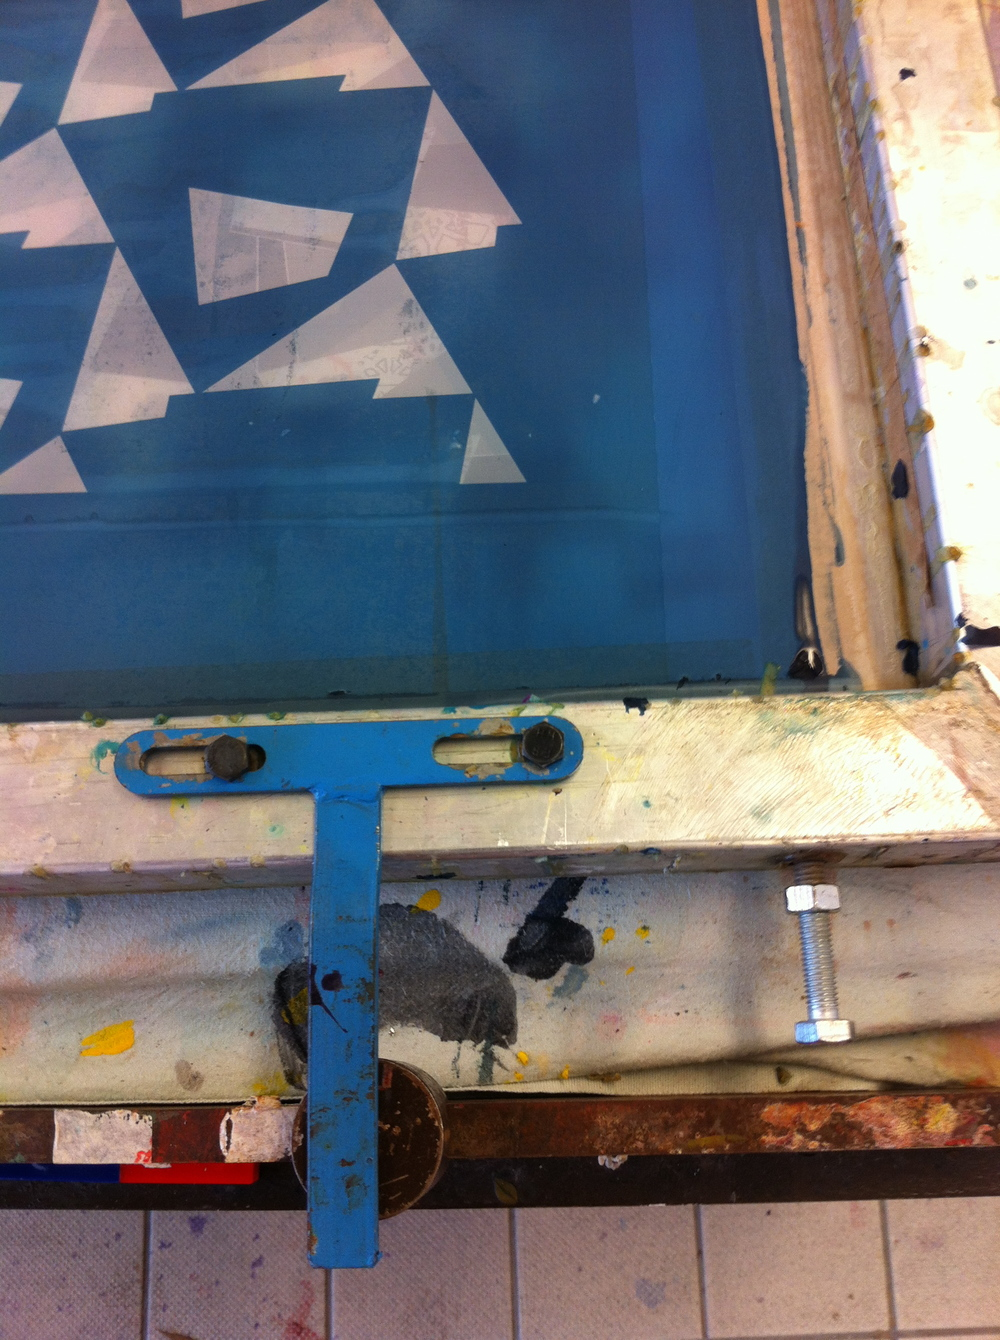 A registration bar is fixed and will be used to align the screen before each print. The repeat is measured by placing the screen alongside the acetates, which tells us the distance required between each stopper. The registration bar will then be used to line up with the stoppers as it is moved along the table.